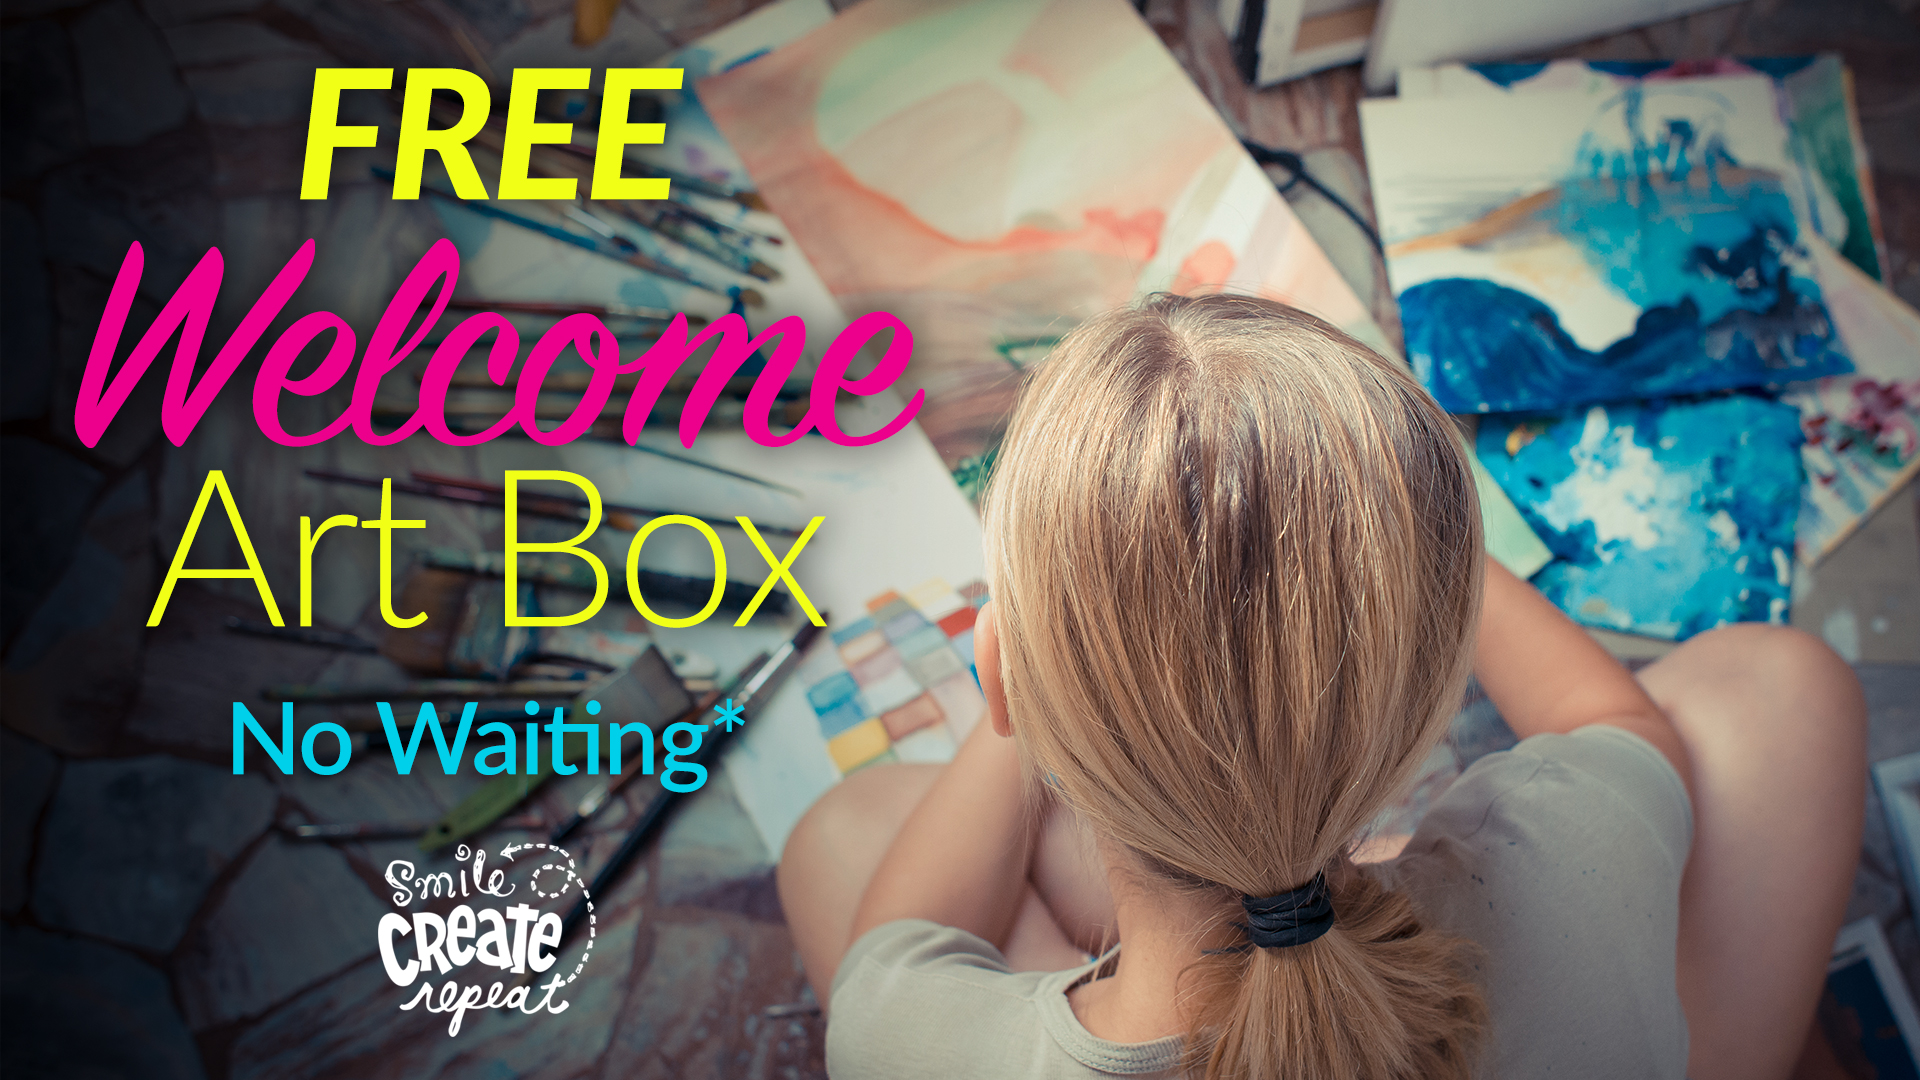 Order a 6 or 12 month subscription today and start creating right away with your Welcome box ($30 value) ships free!